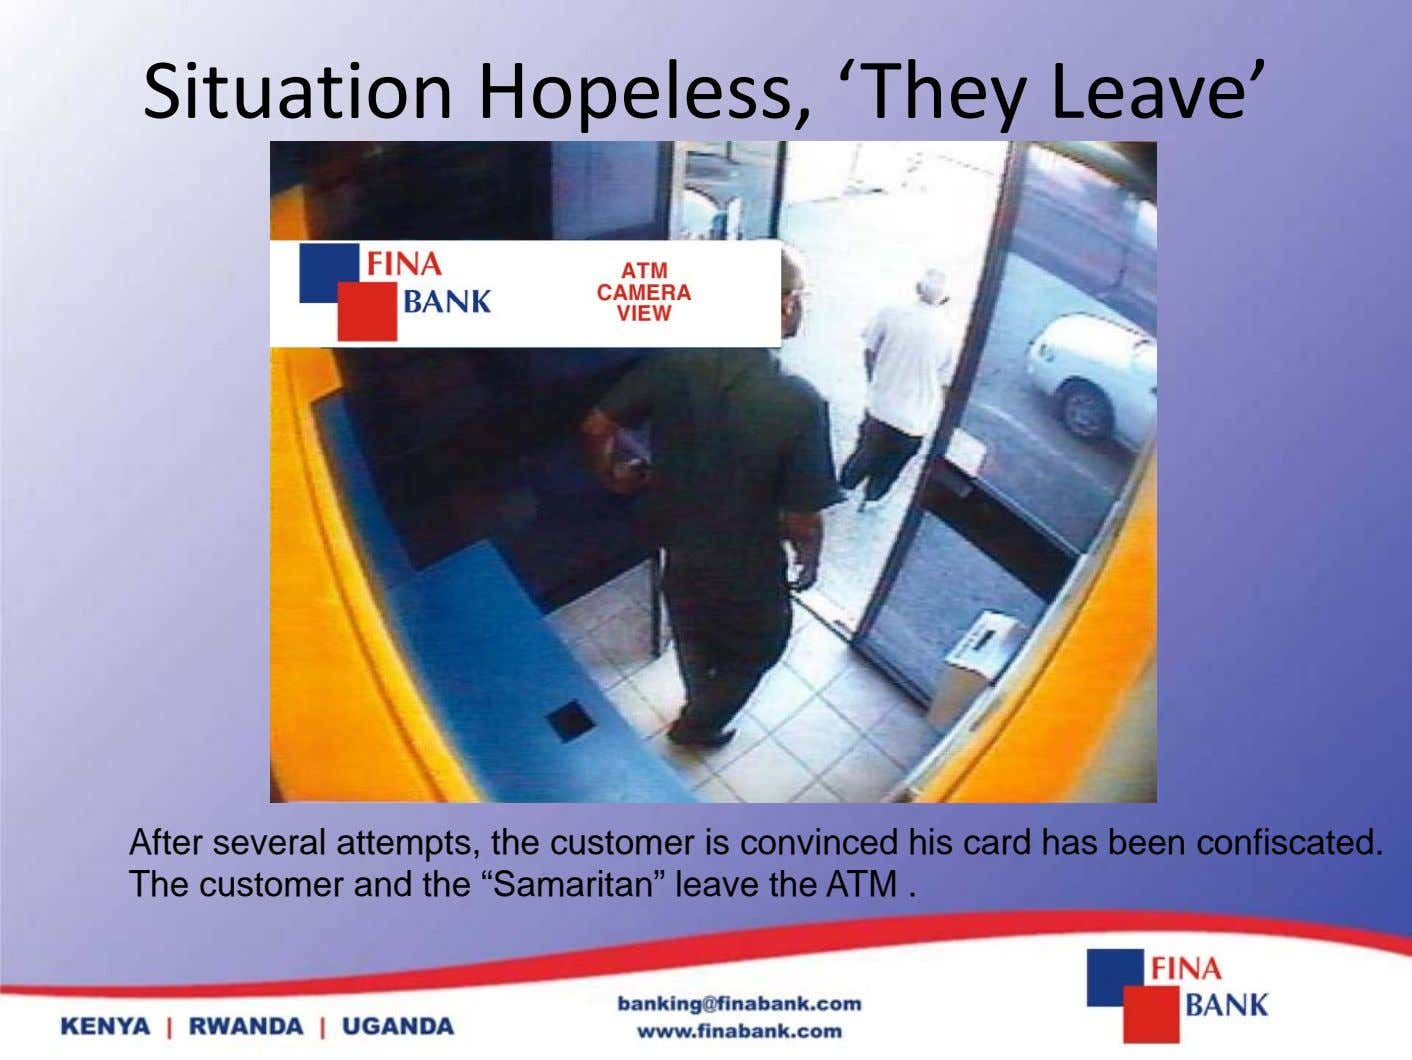 Situation Hopeless, 'They Leave' After several attempts, the customer is convinced his card has been